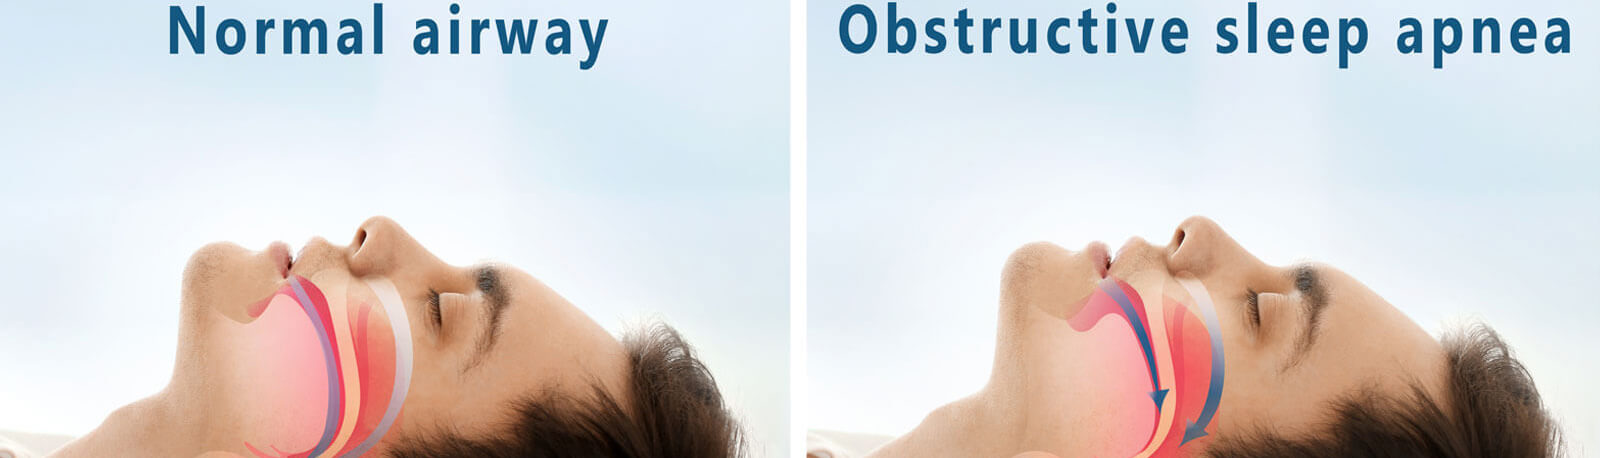 Snore problem concept - Illustration of normal airway and obstructive sleep apnea